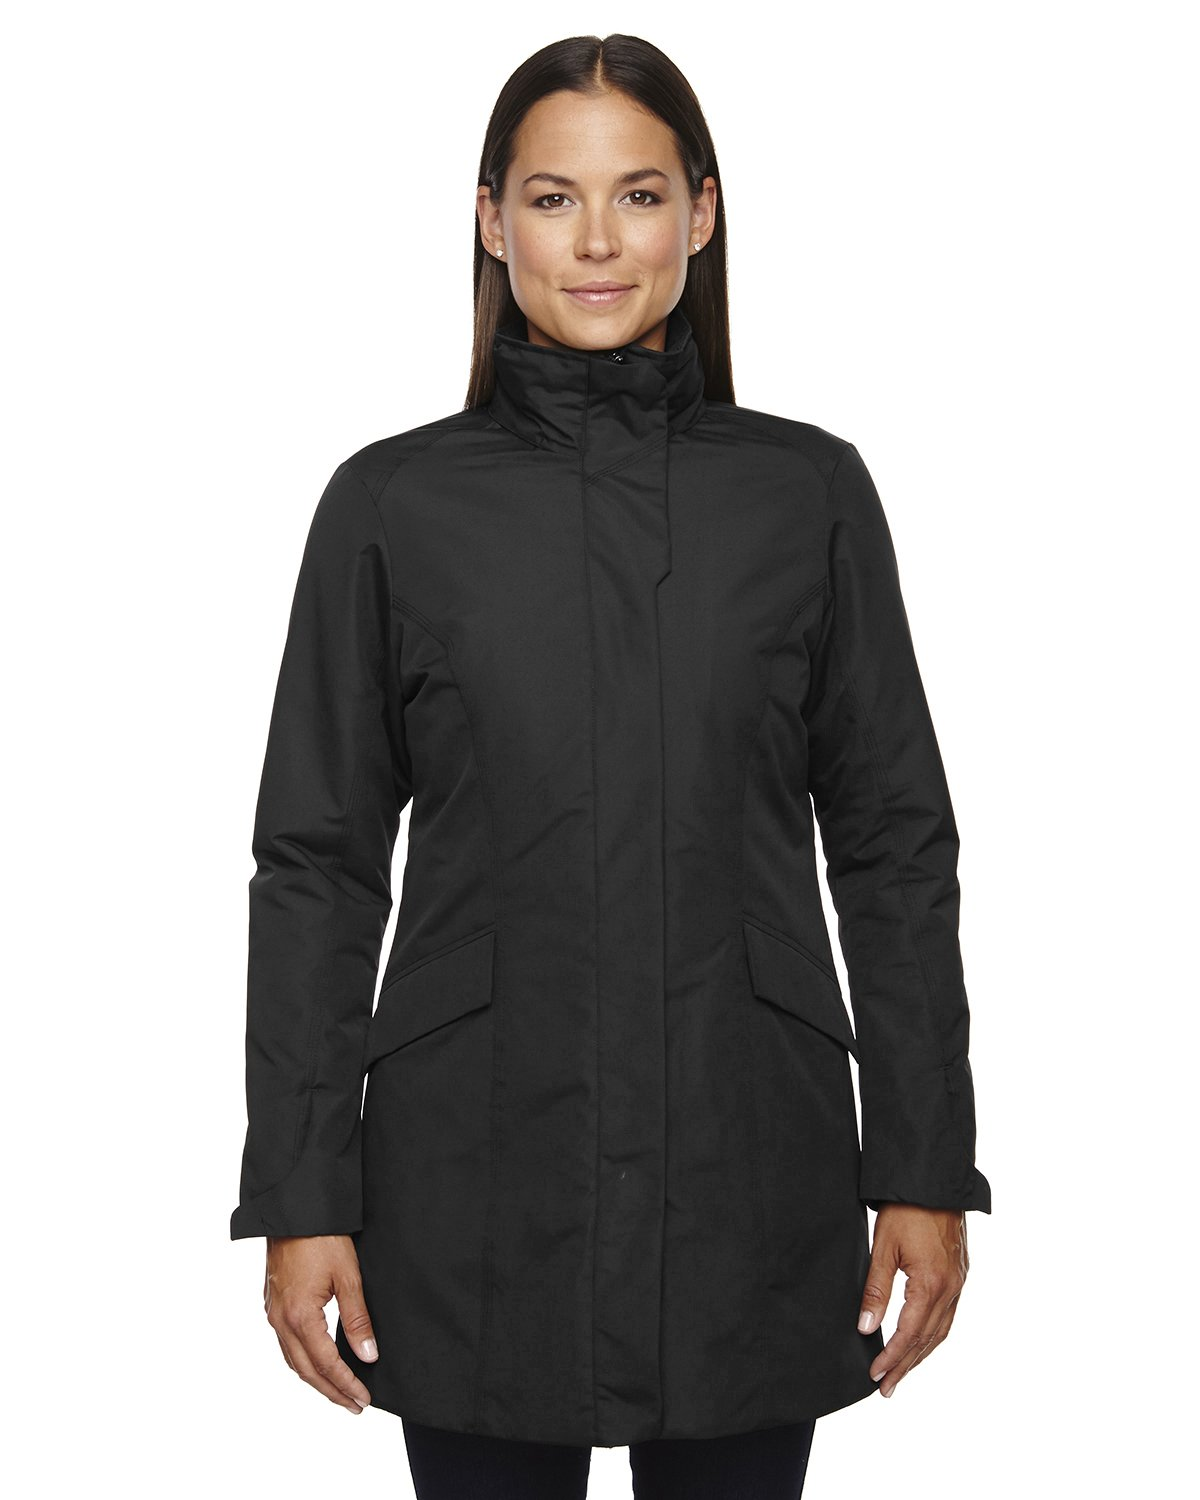 Ash City Apparel North End Promote Ladies Insulated Car Jacket (X-Small, Black)